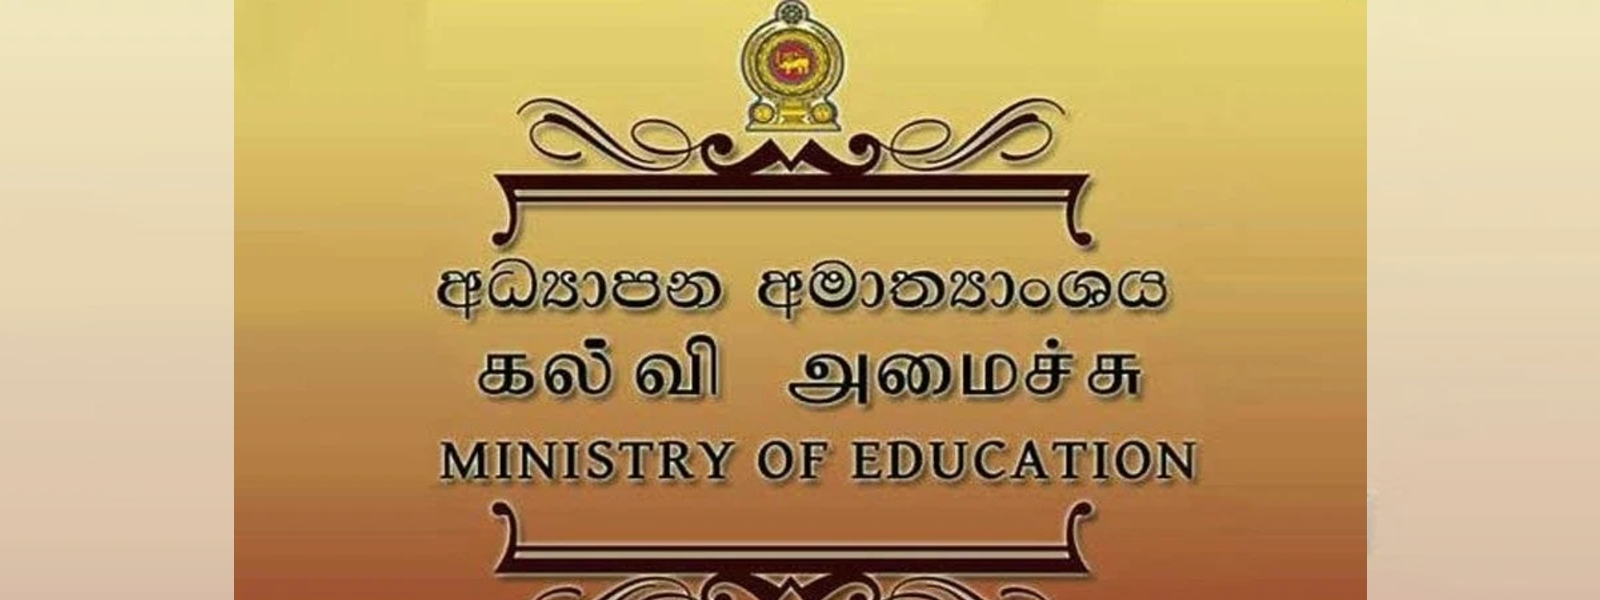 School holiday extended ; new date for A/L exams to be decided